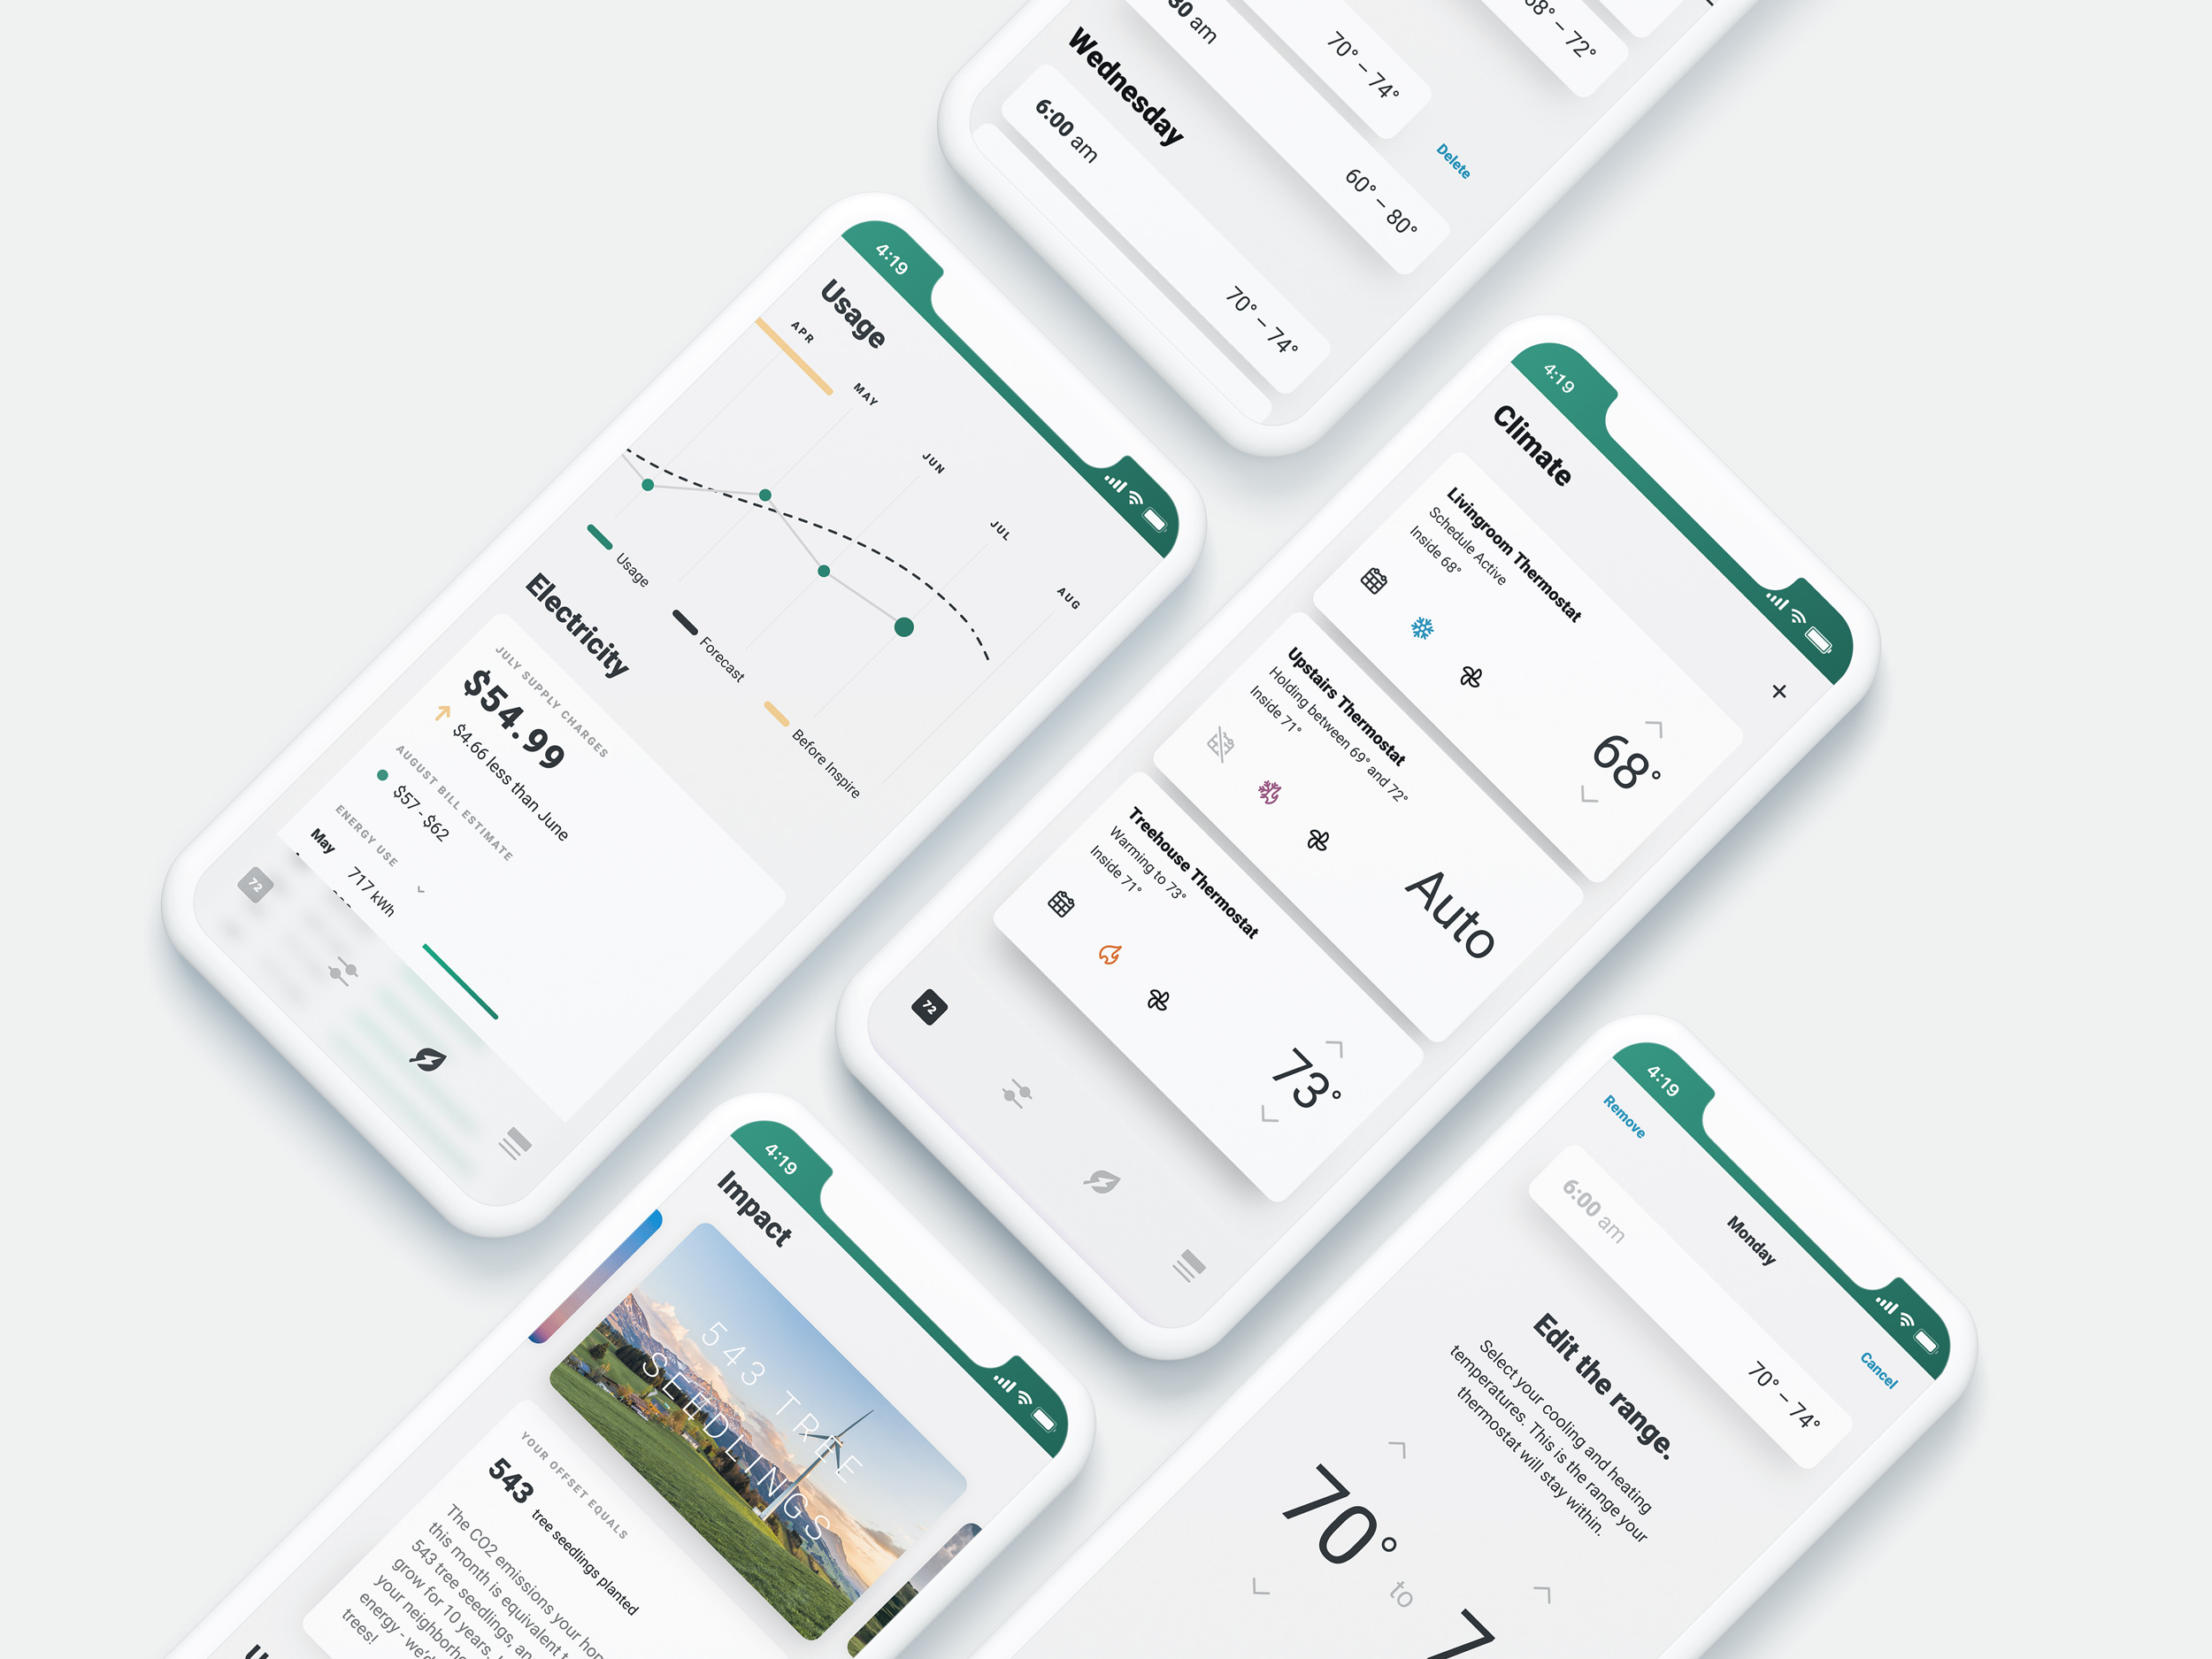 Product inspireapp overview